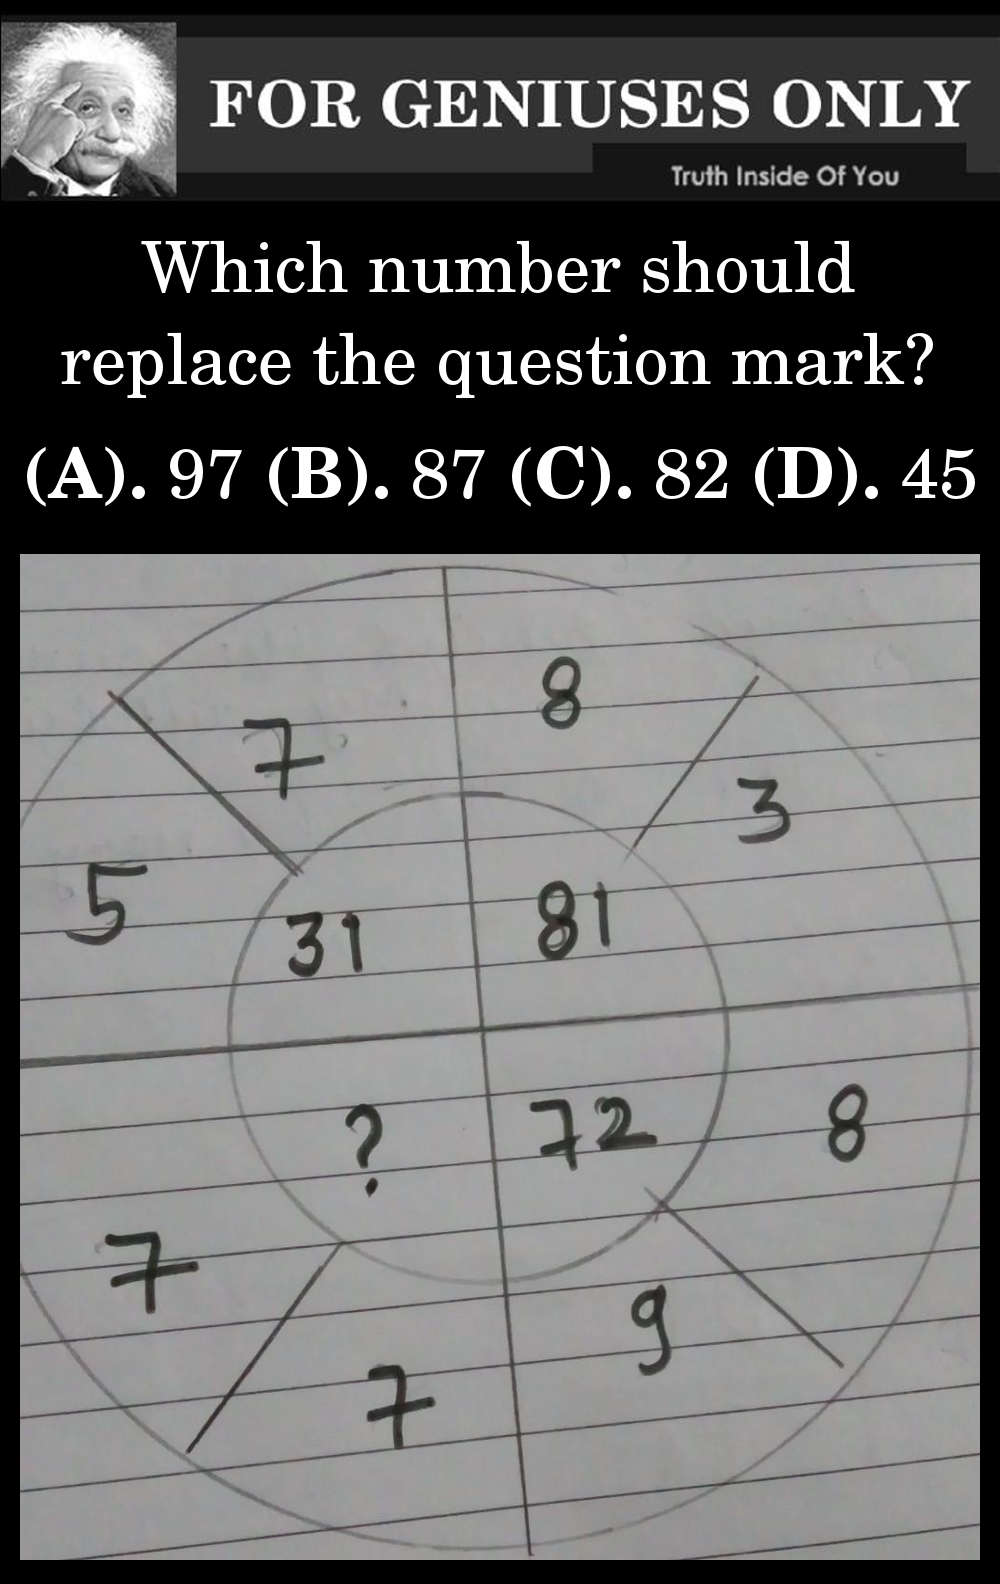 can you find the right question?